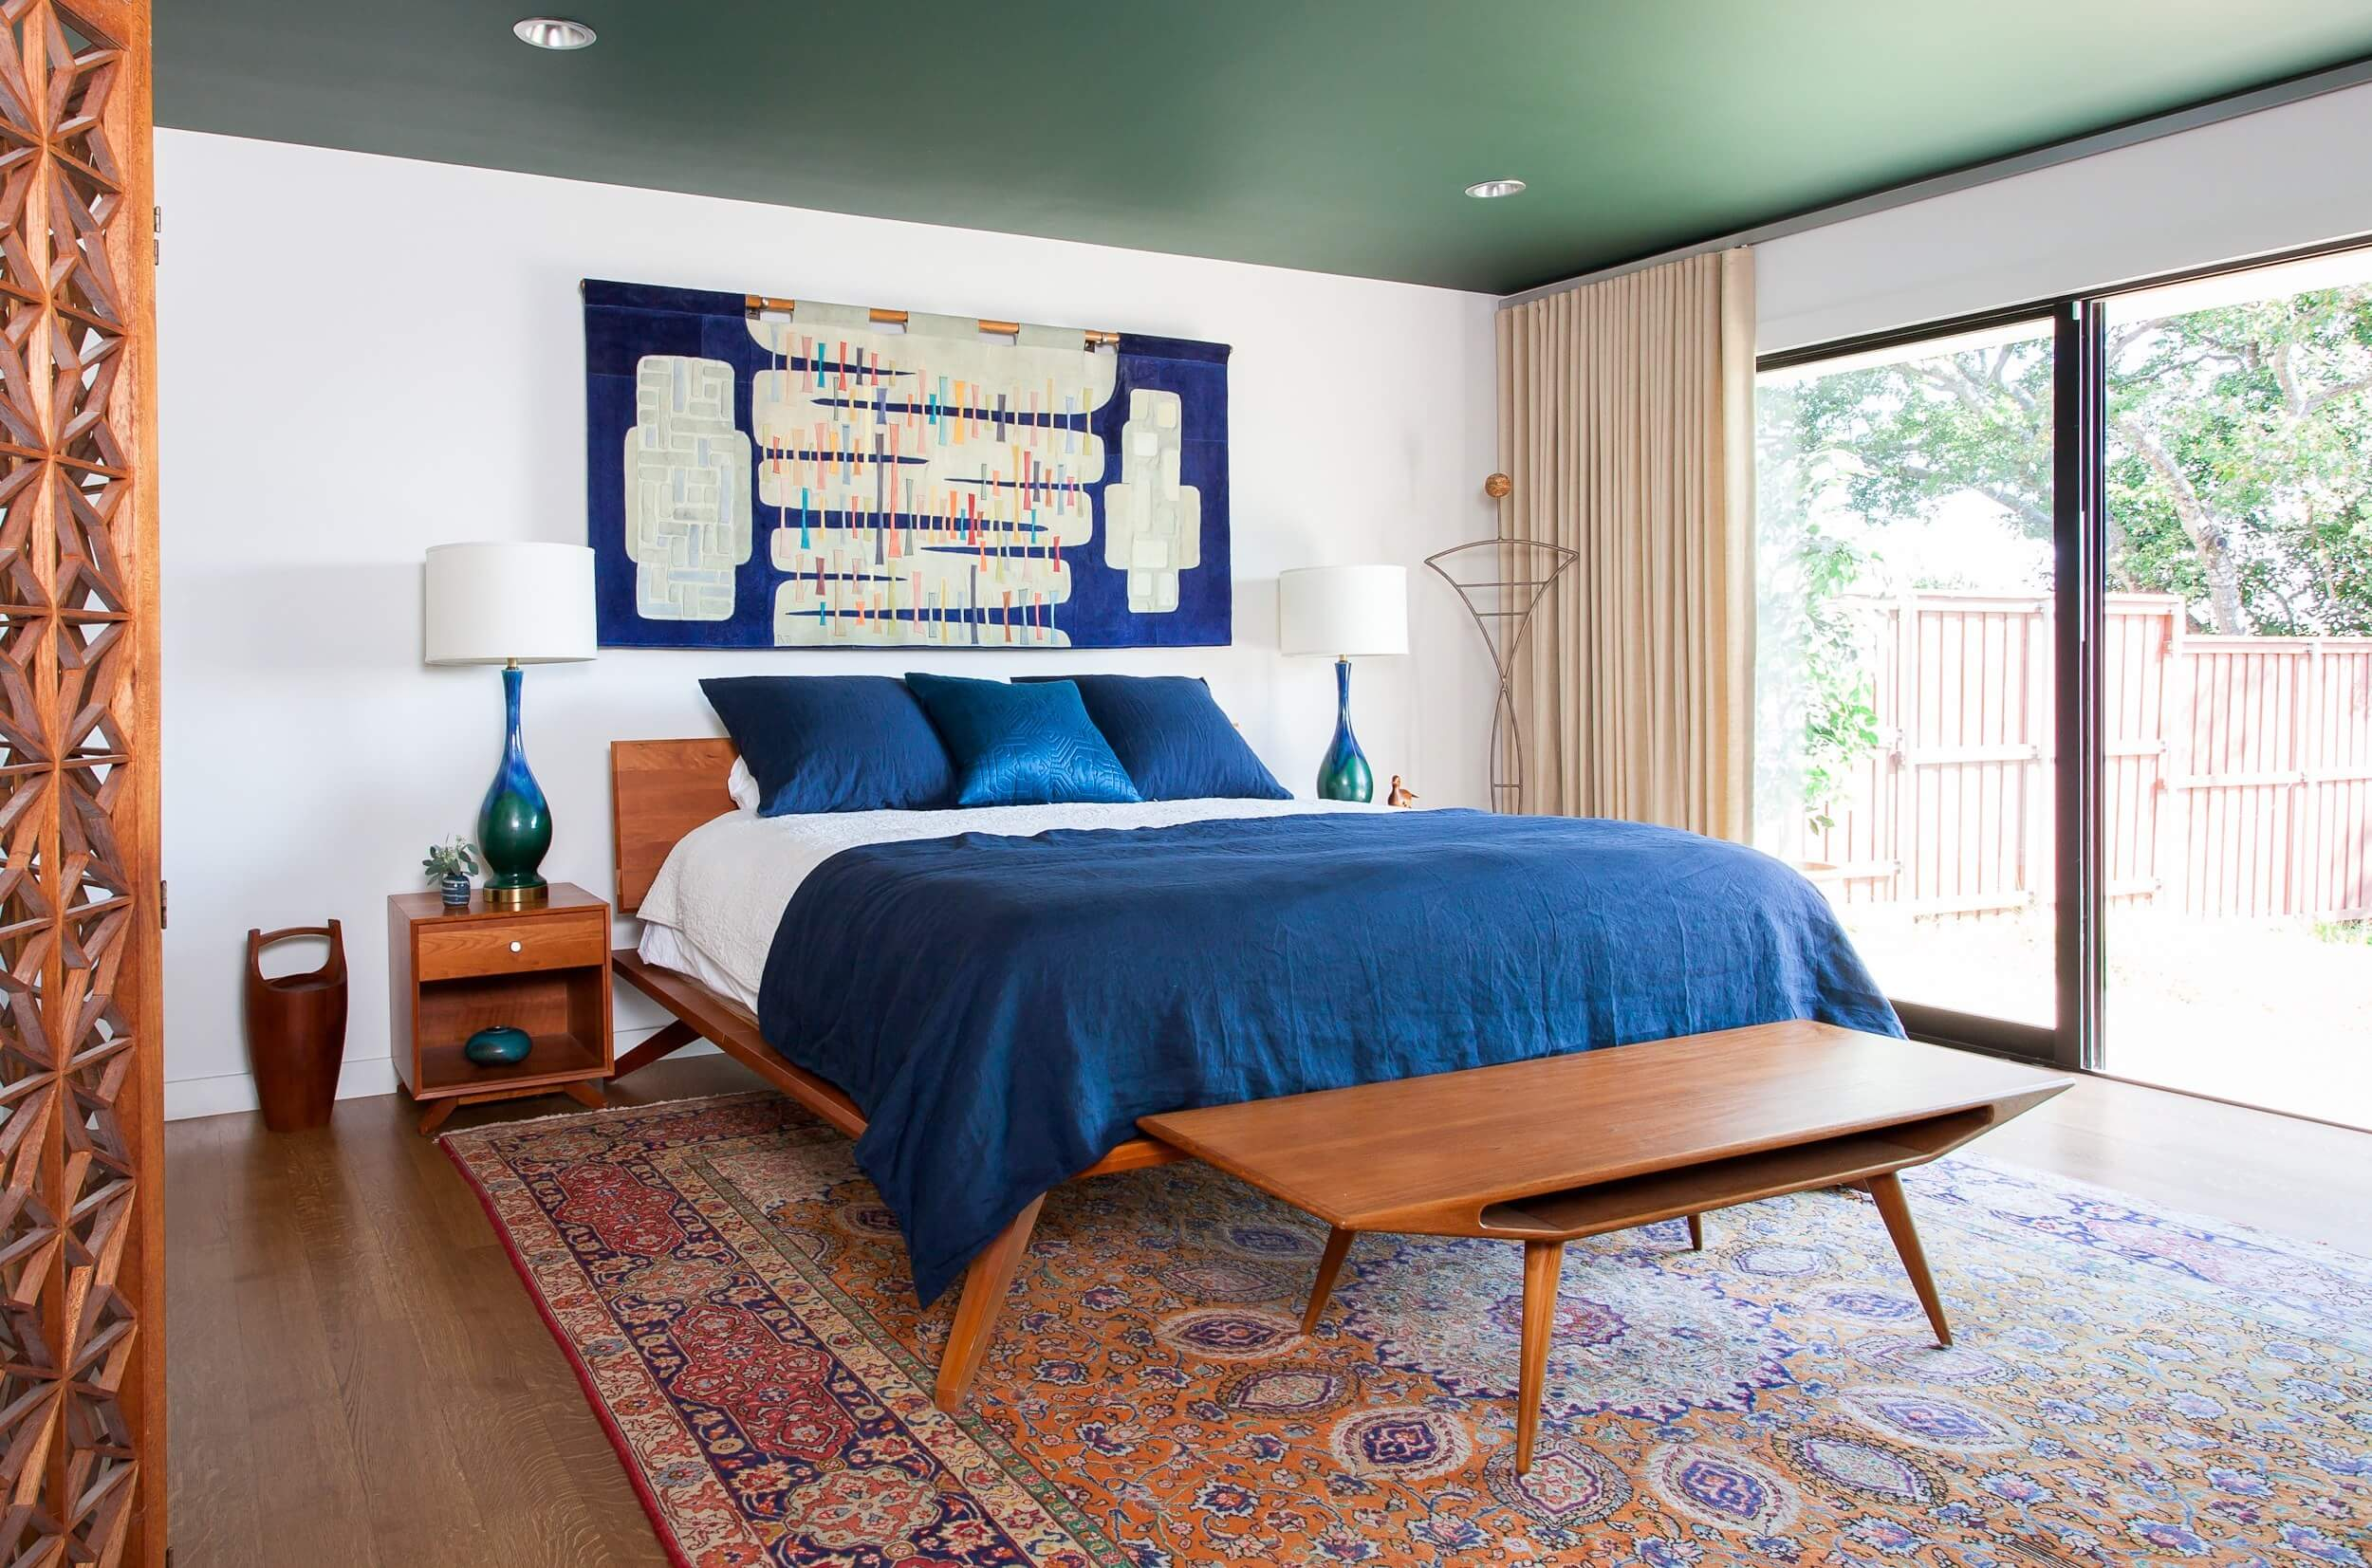 mid century modern interior design bedroom